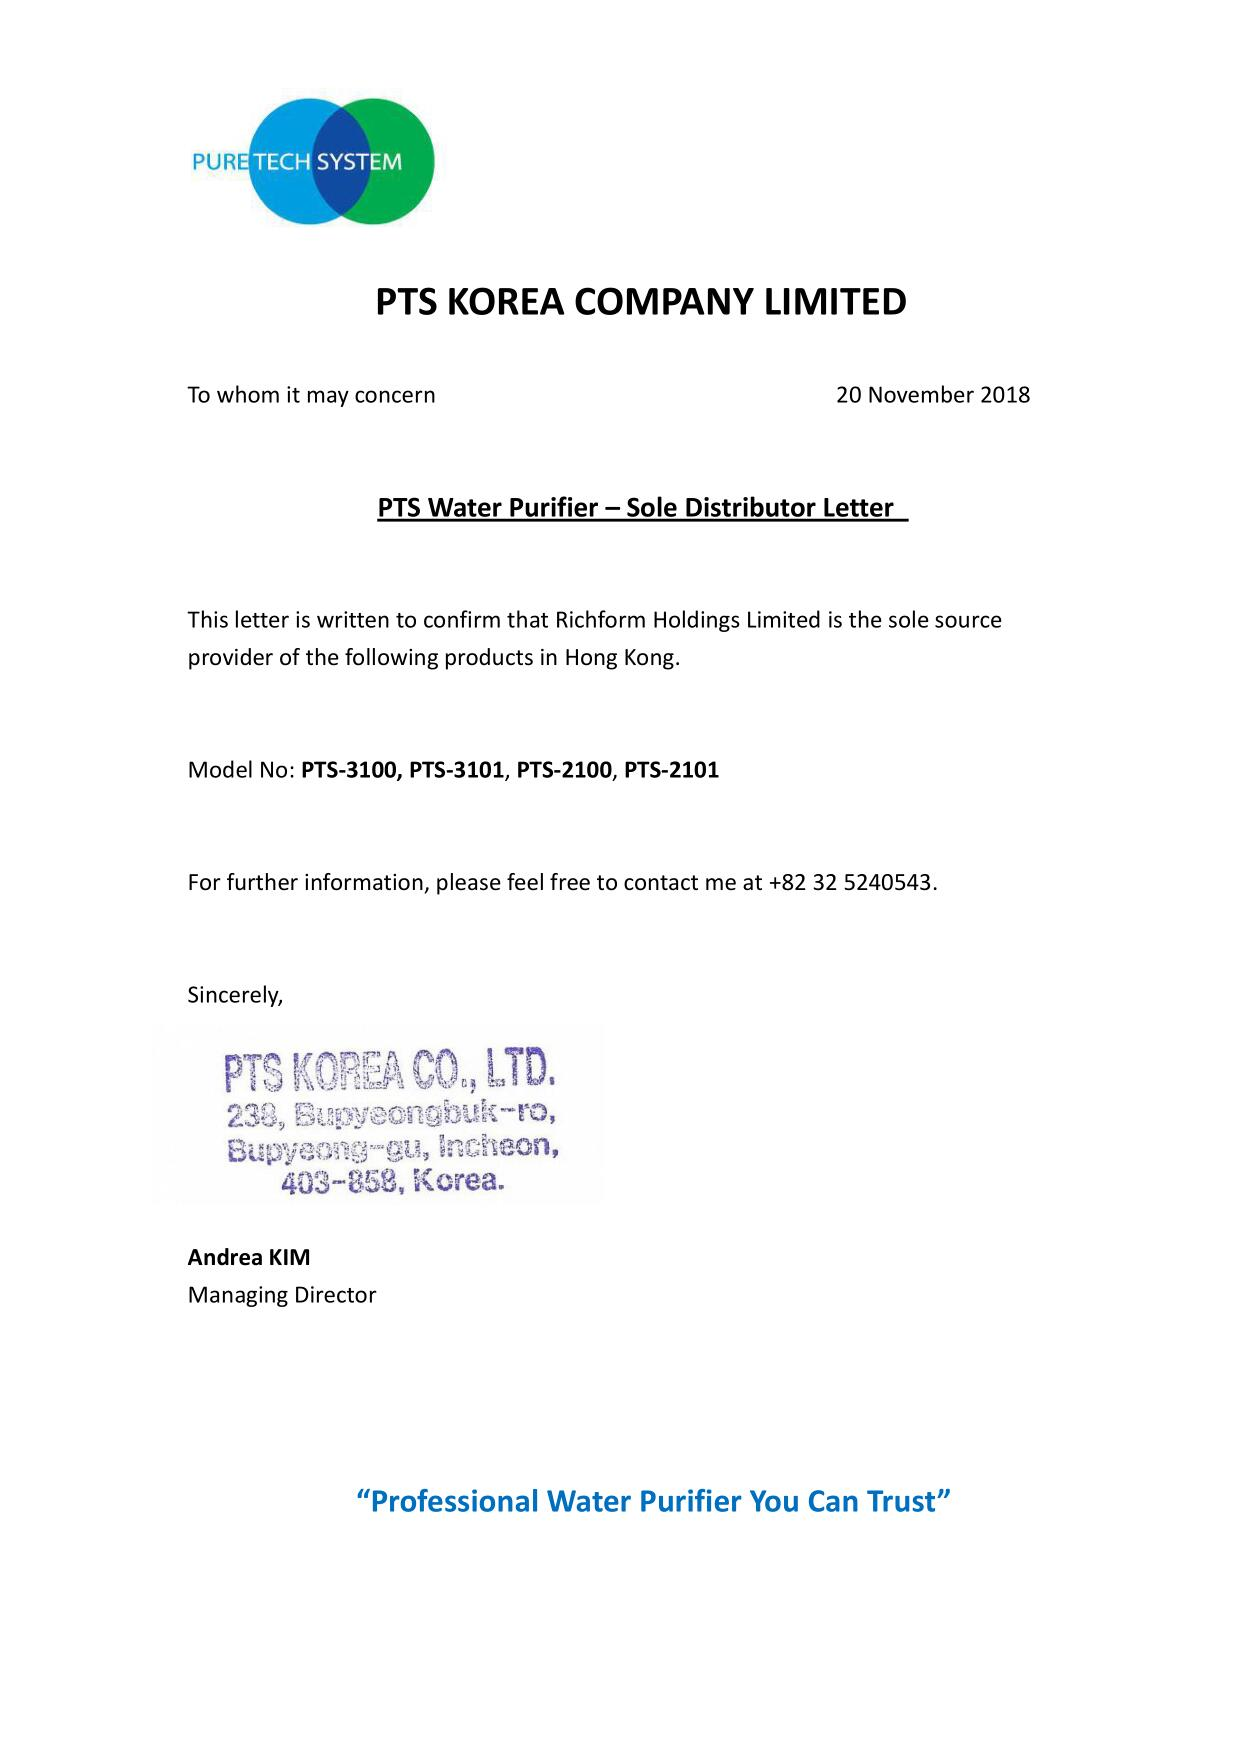 PTS Water Purifier - sole Distributor letter